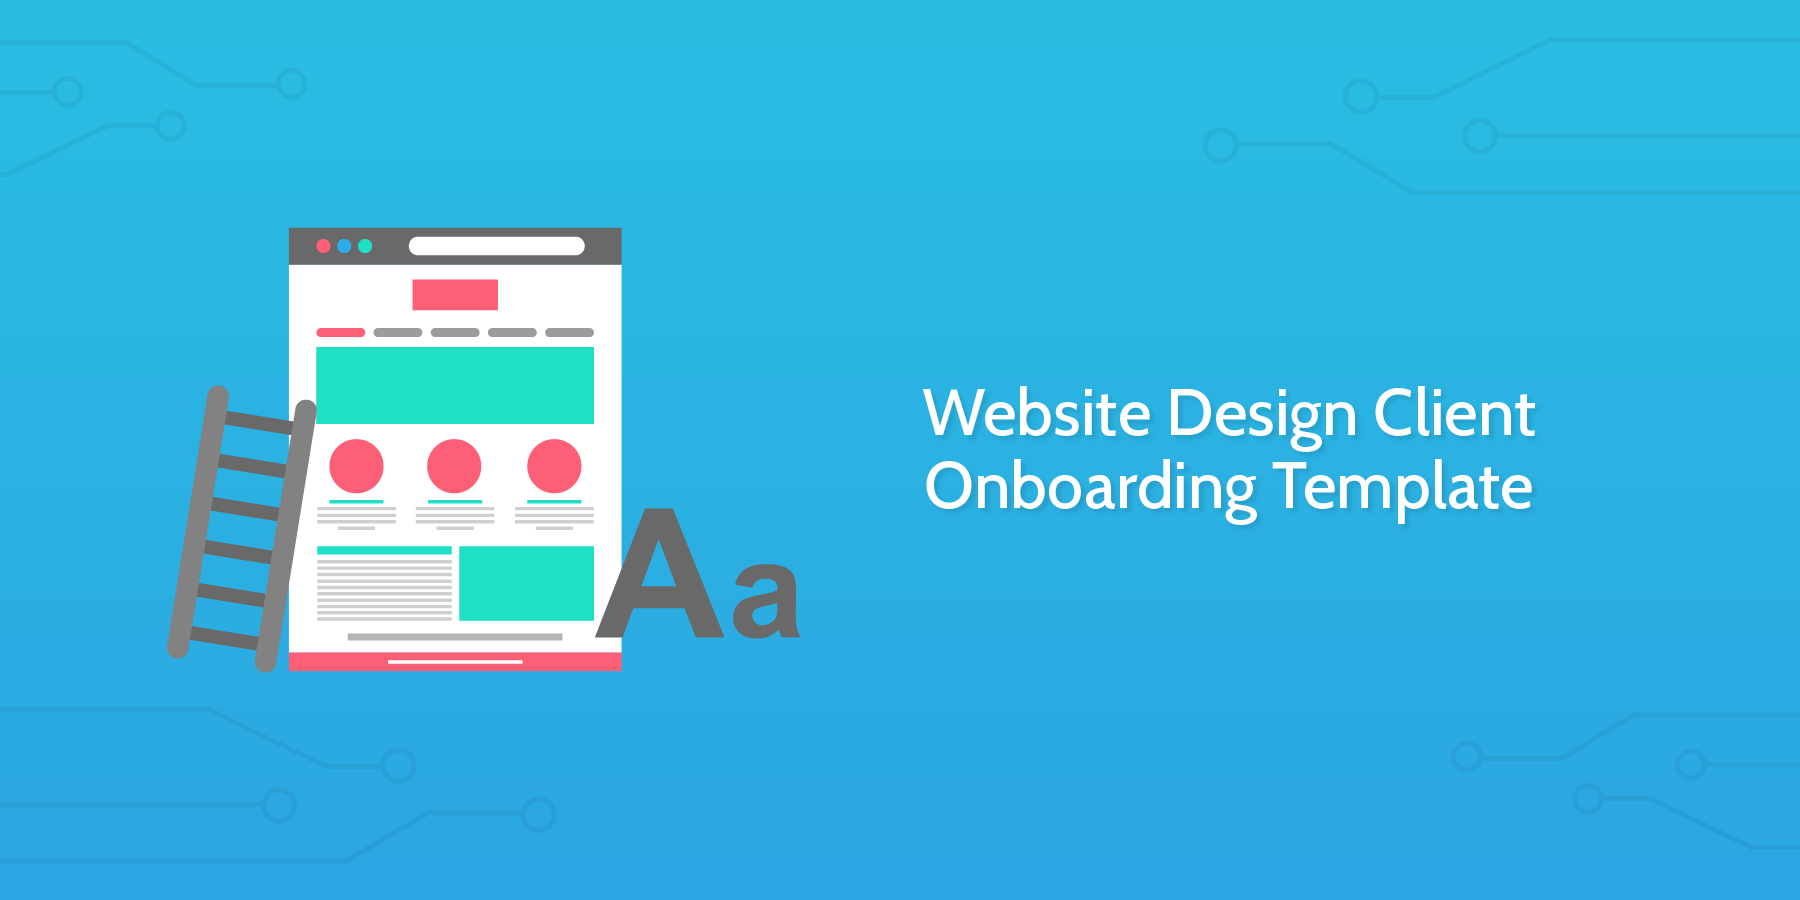 website design client onboarding template